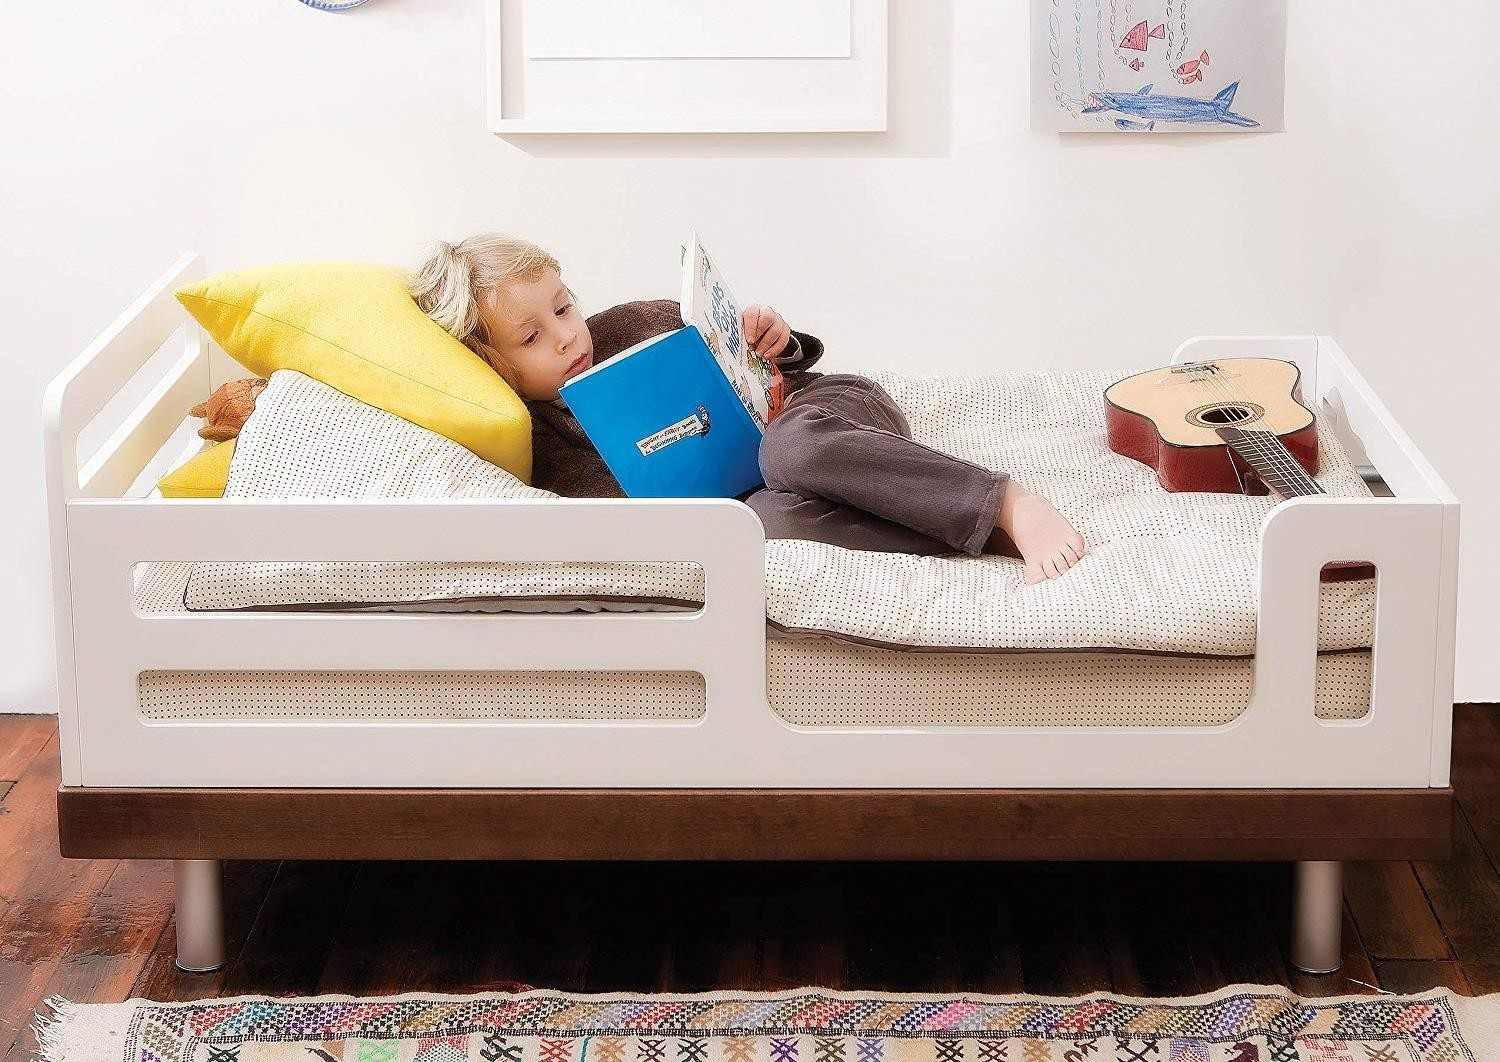 Best Boys Beds The Best Toddler Beds For Kids For 2019 See It Now Lonny